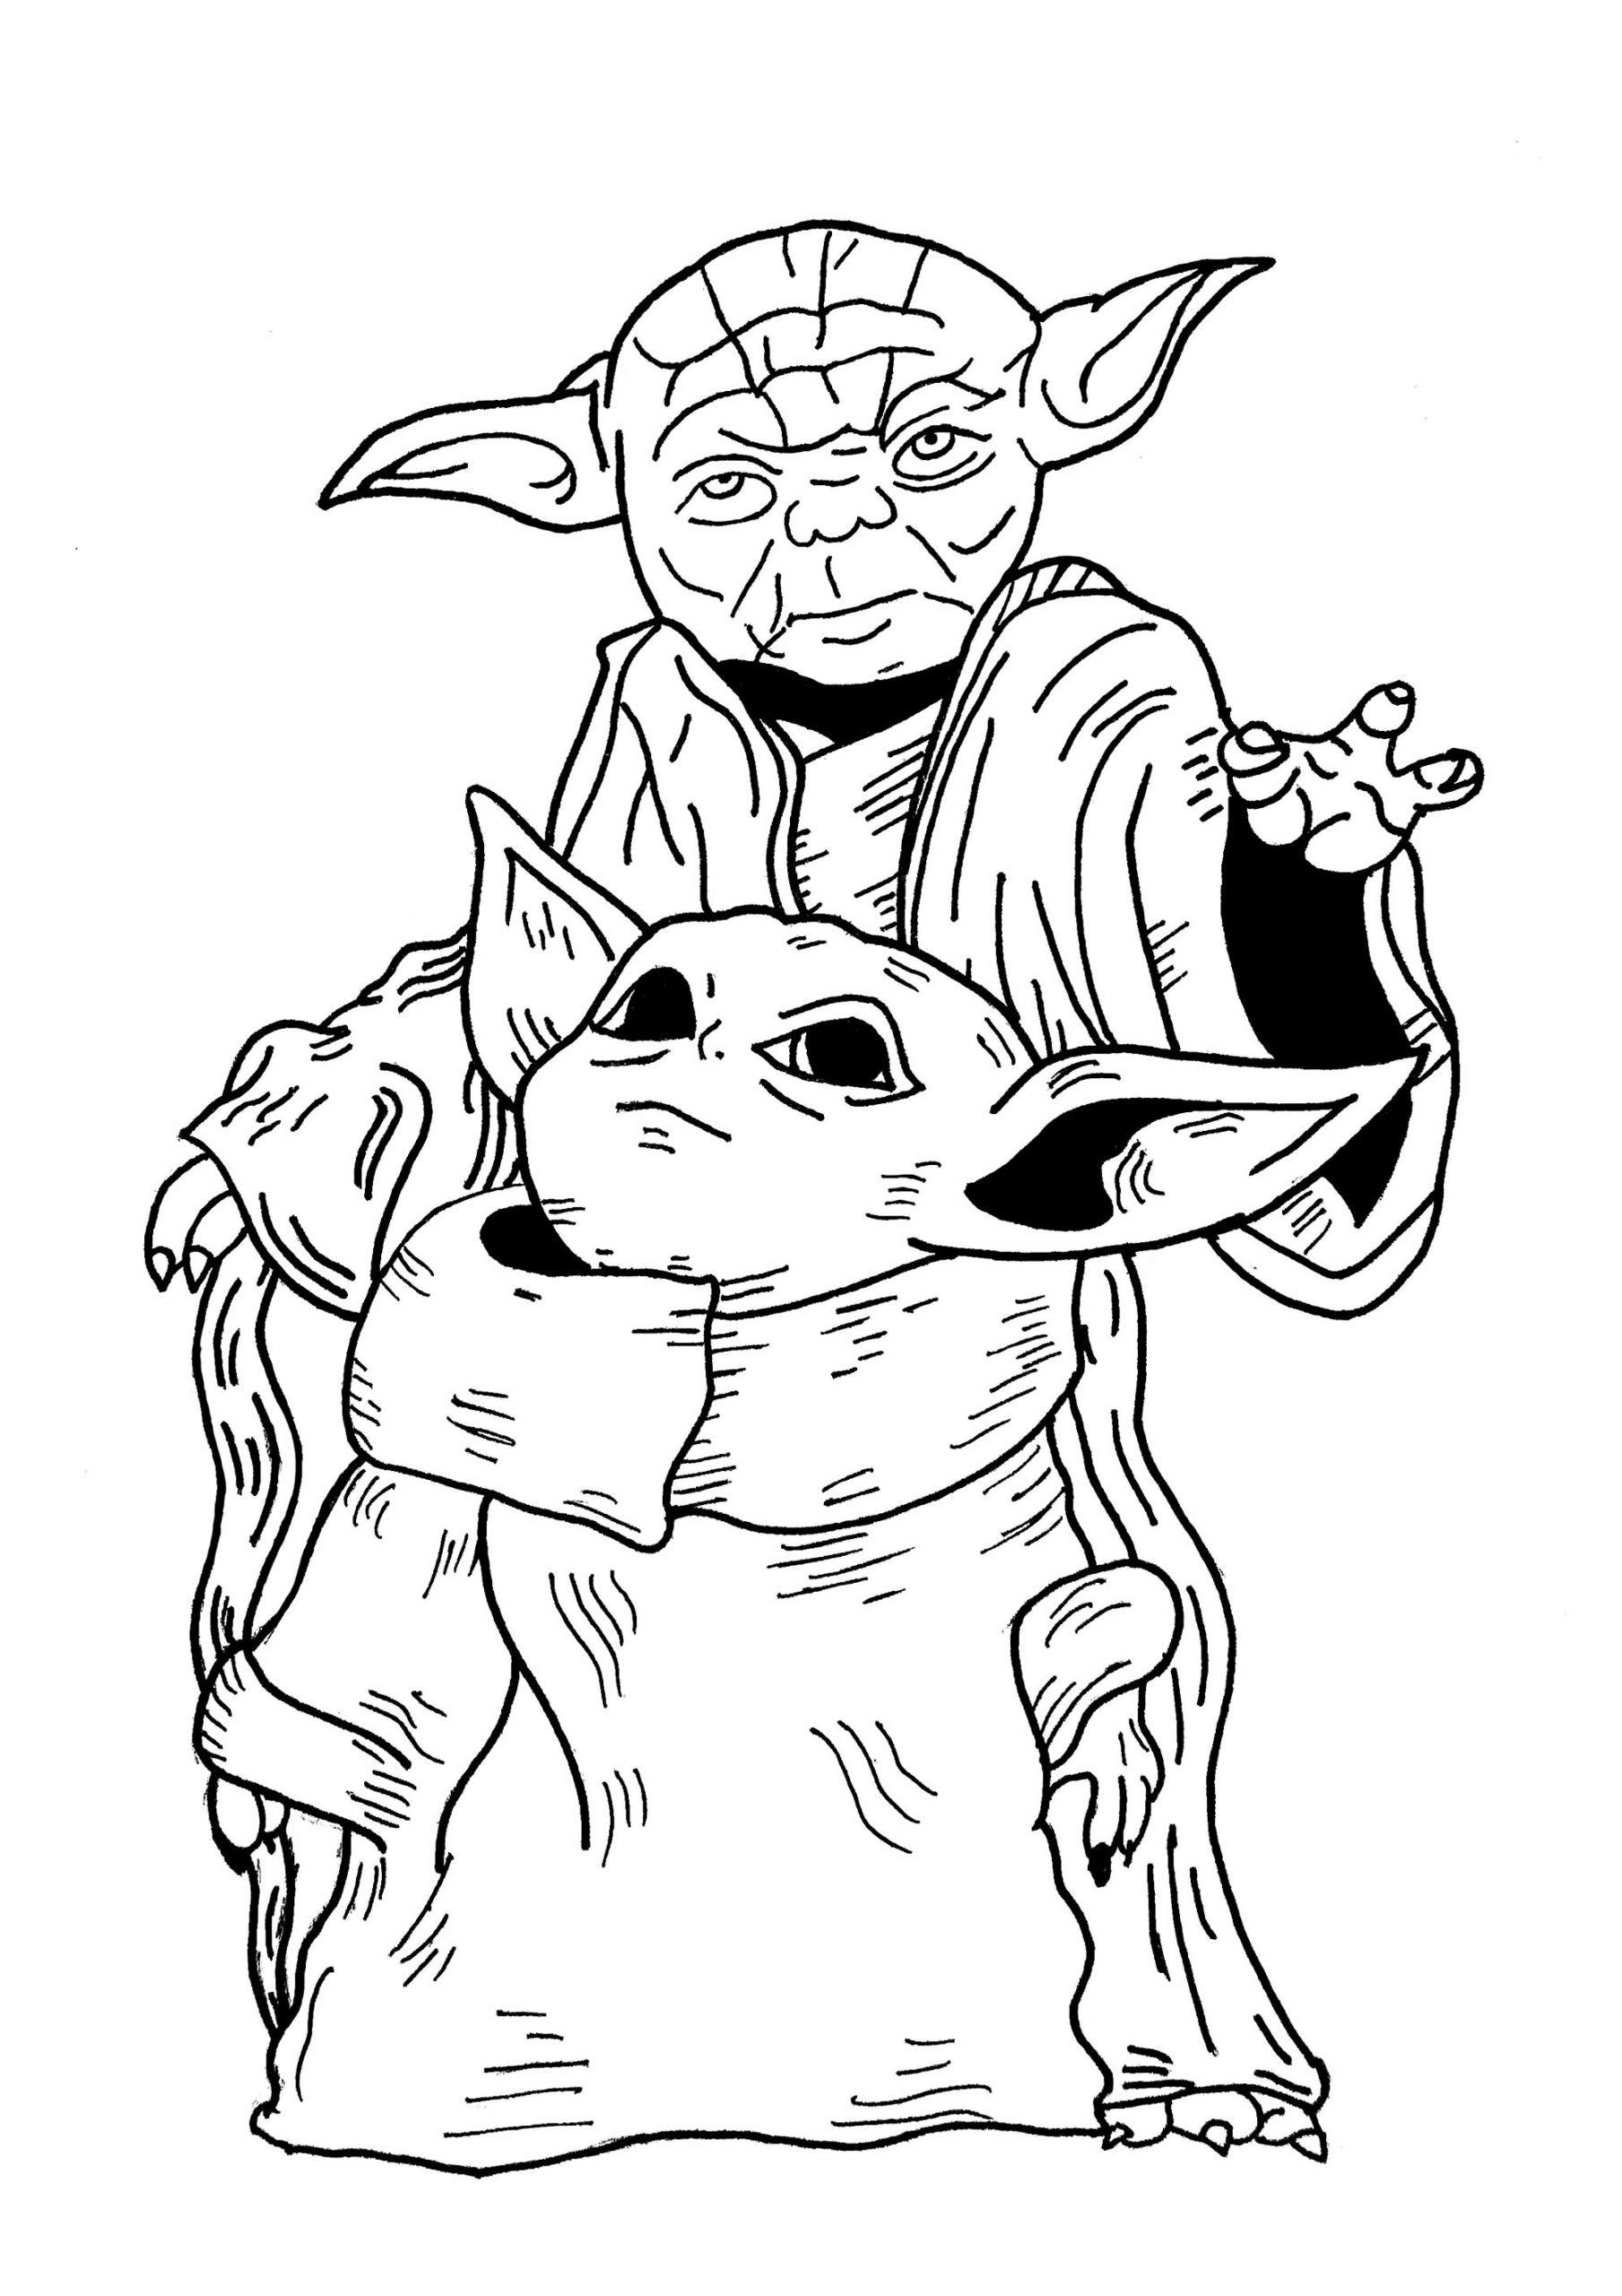 Star Wars Coloring Pages Master Yoda And Baby Yoda Star Wars Coloring Pages Small Yet Star Wars Coloring Book Star Wars Coloring Sheet Yoda Drawing